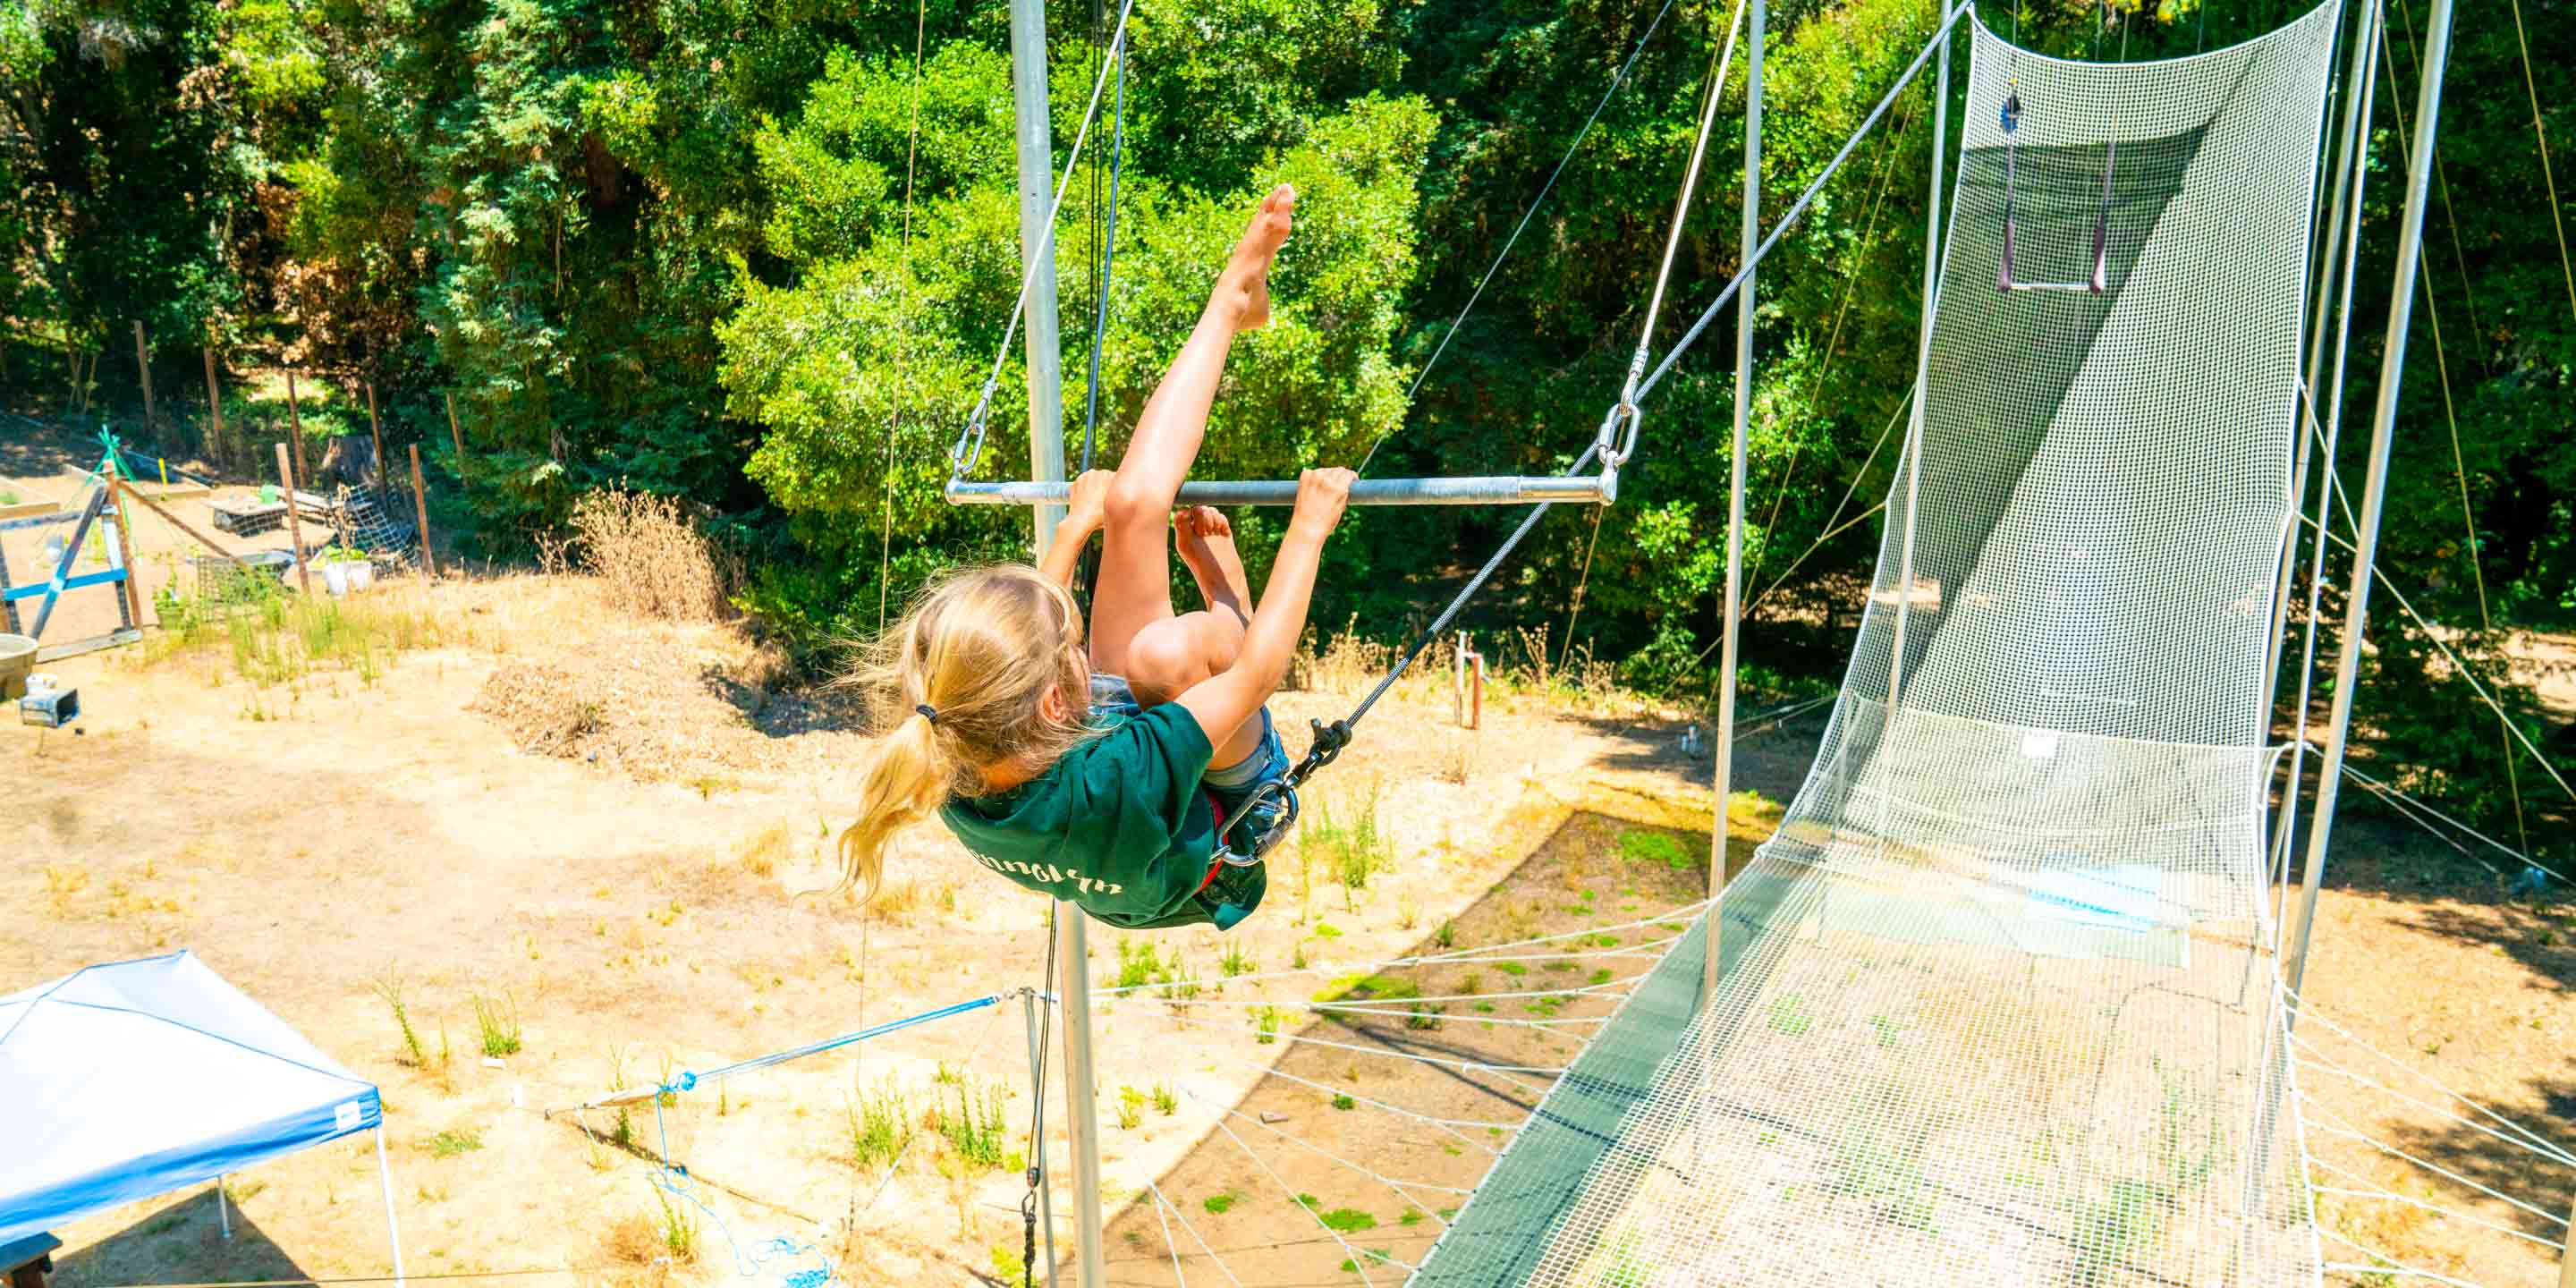 Girl swings legs over trapeze while swinging